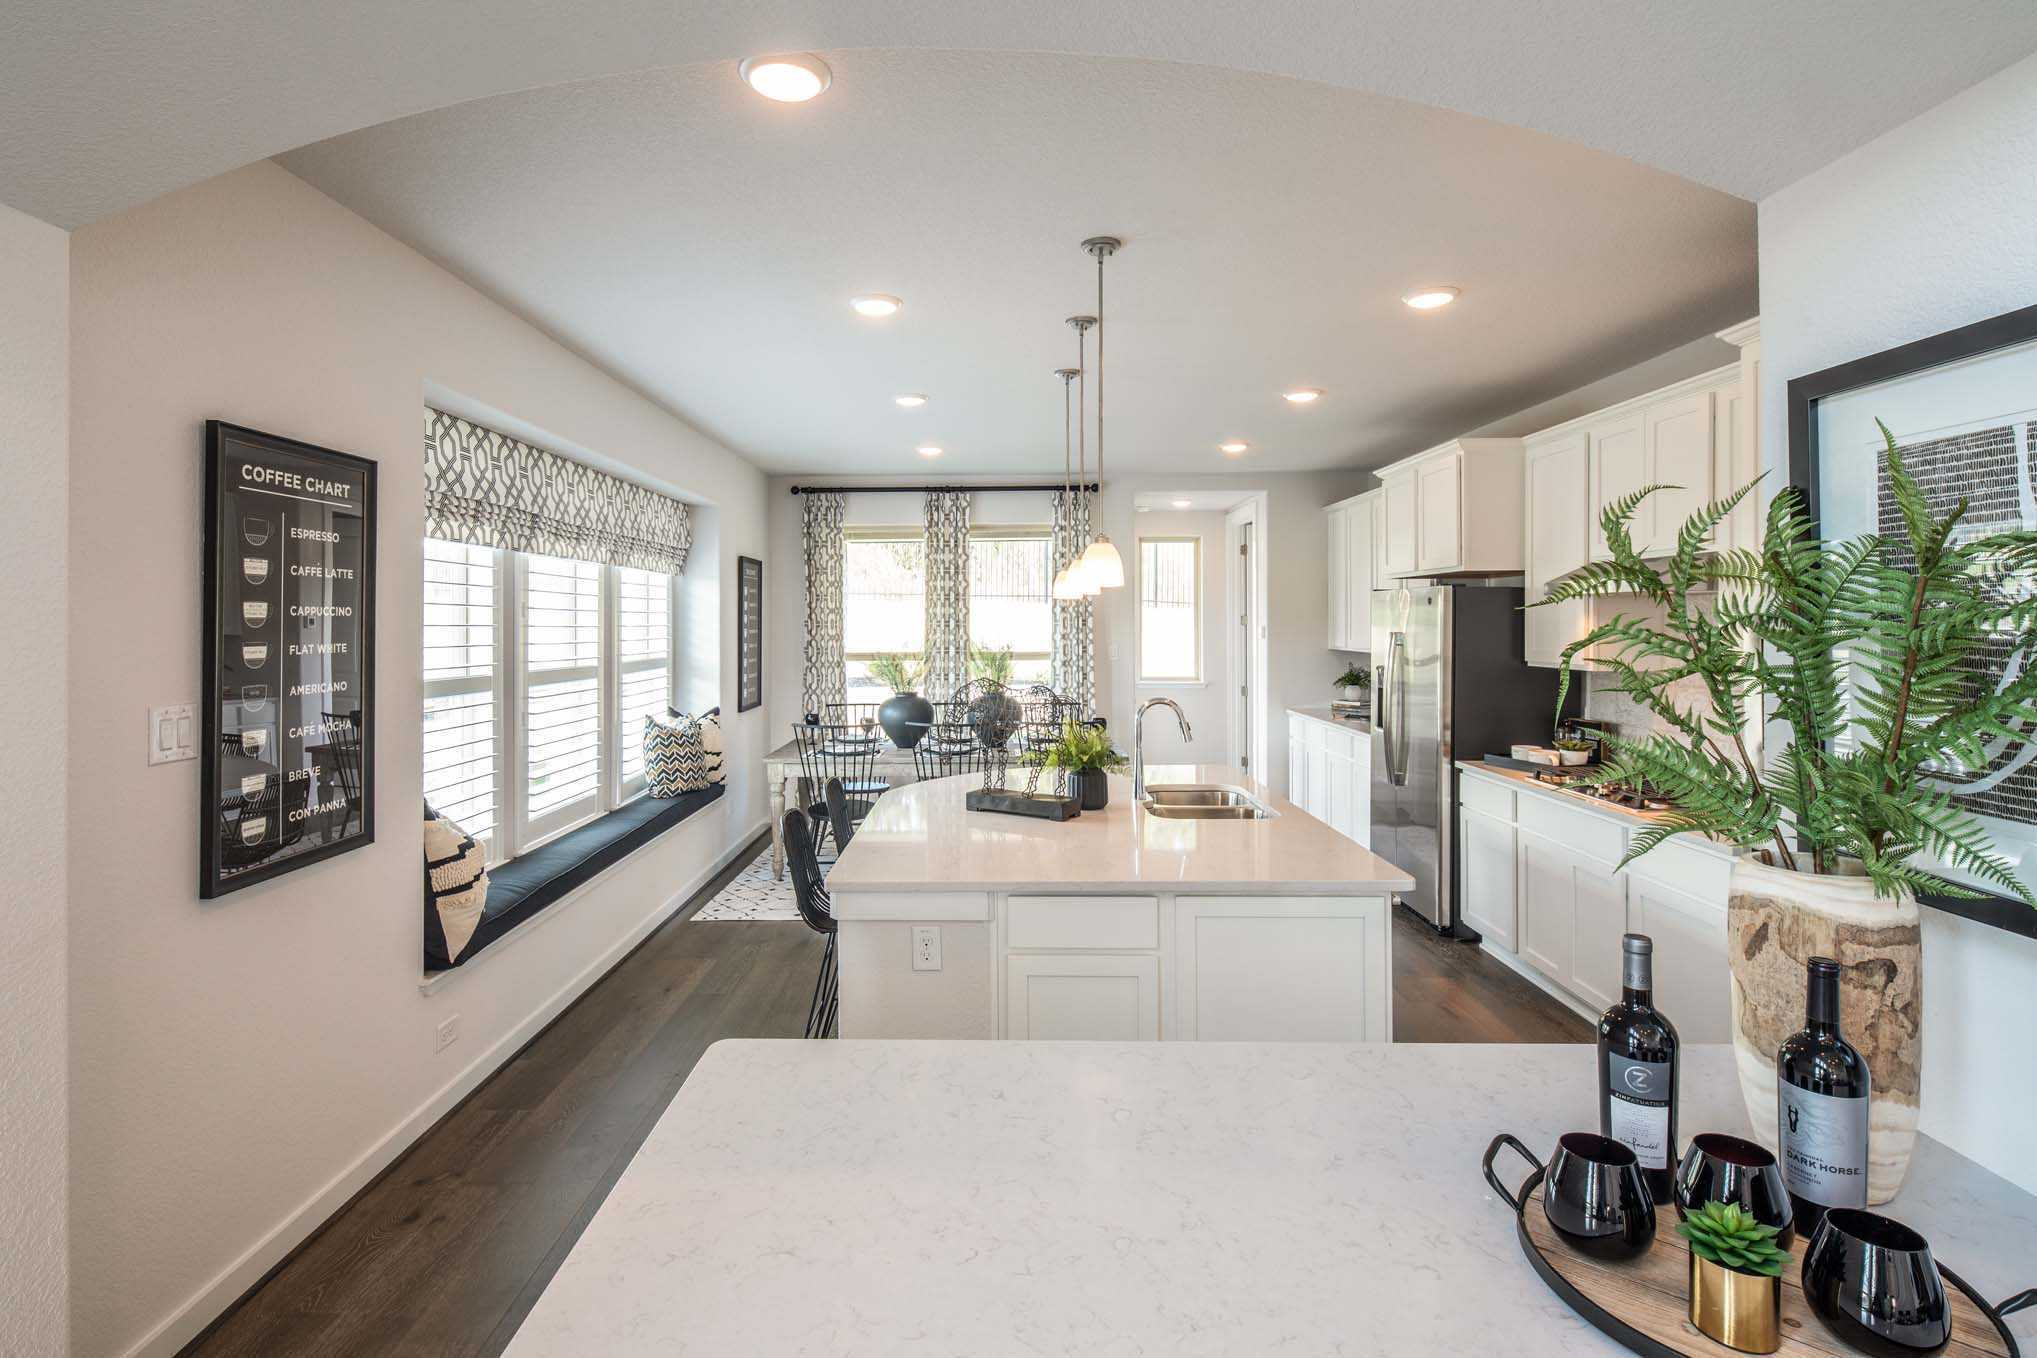 Kitchen featured in the Plan Everleigh By Highland Homes in Houston, TX